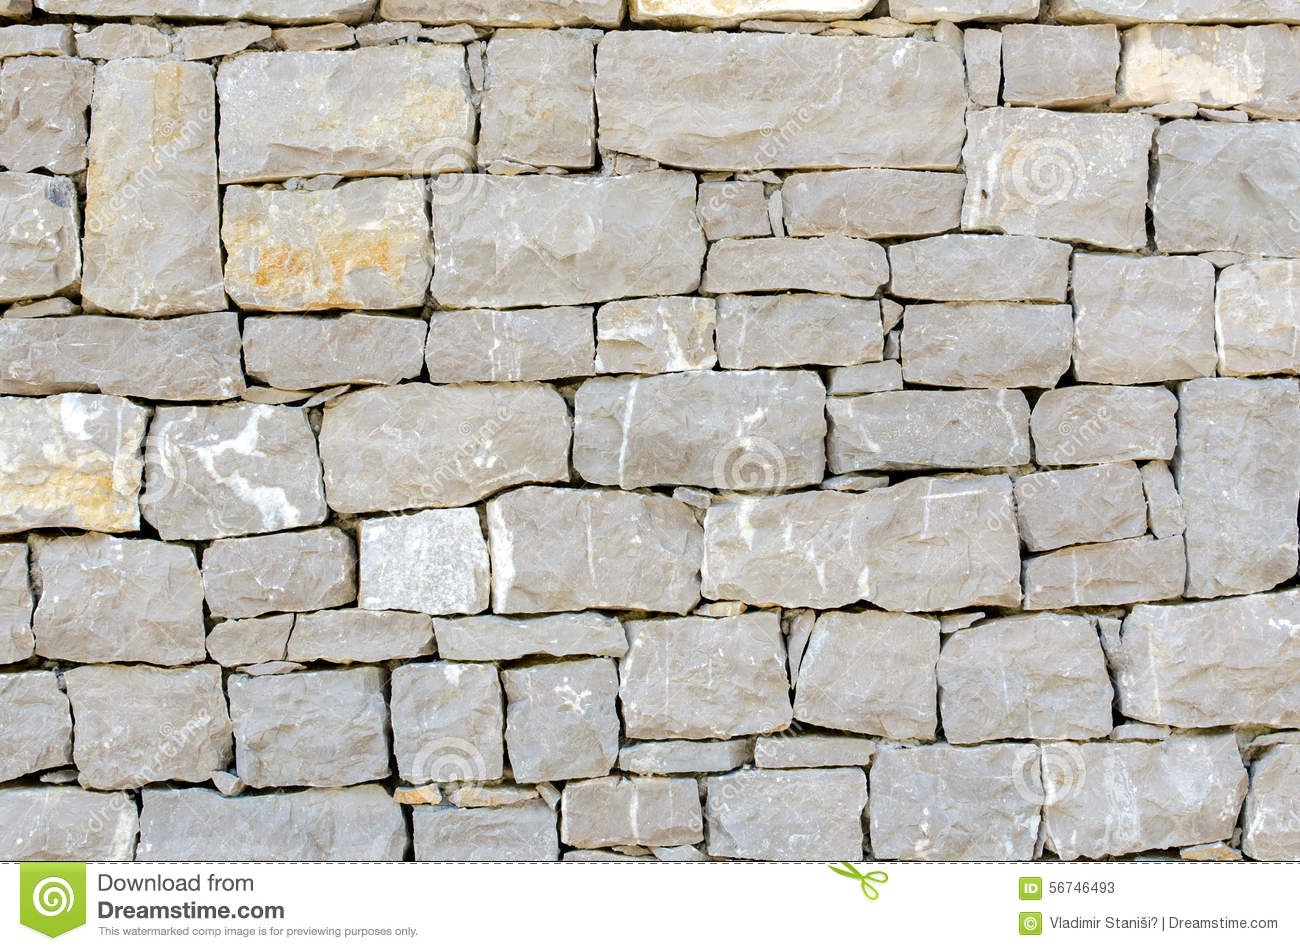 royaltyfree stock photo download stone facade